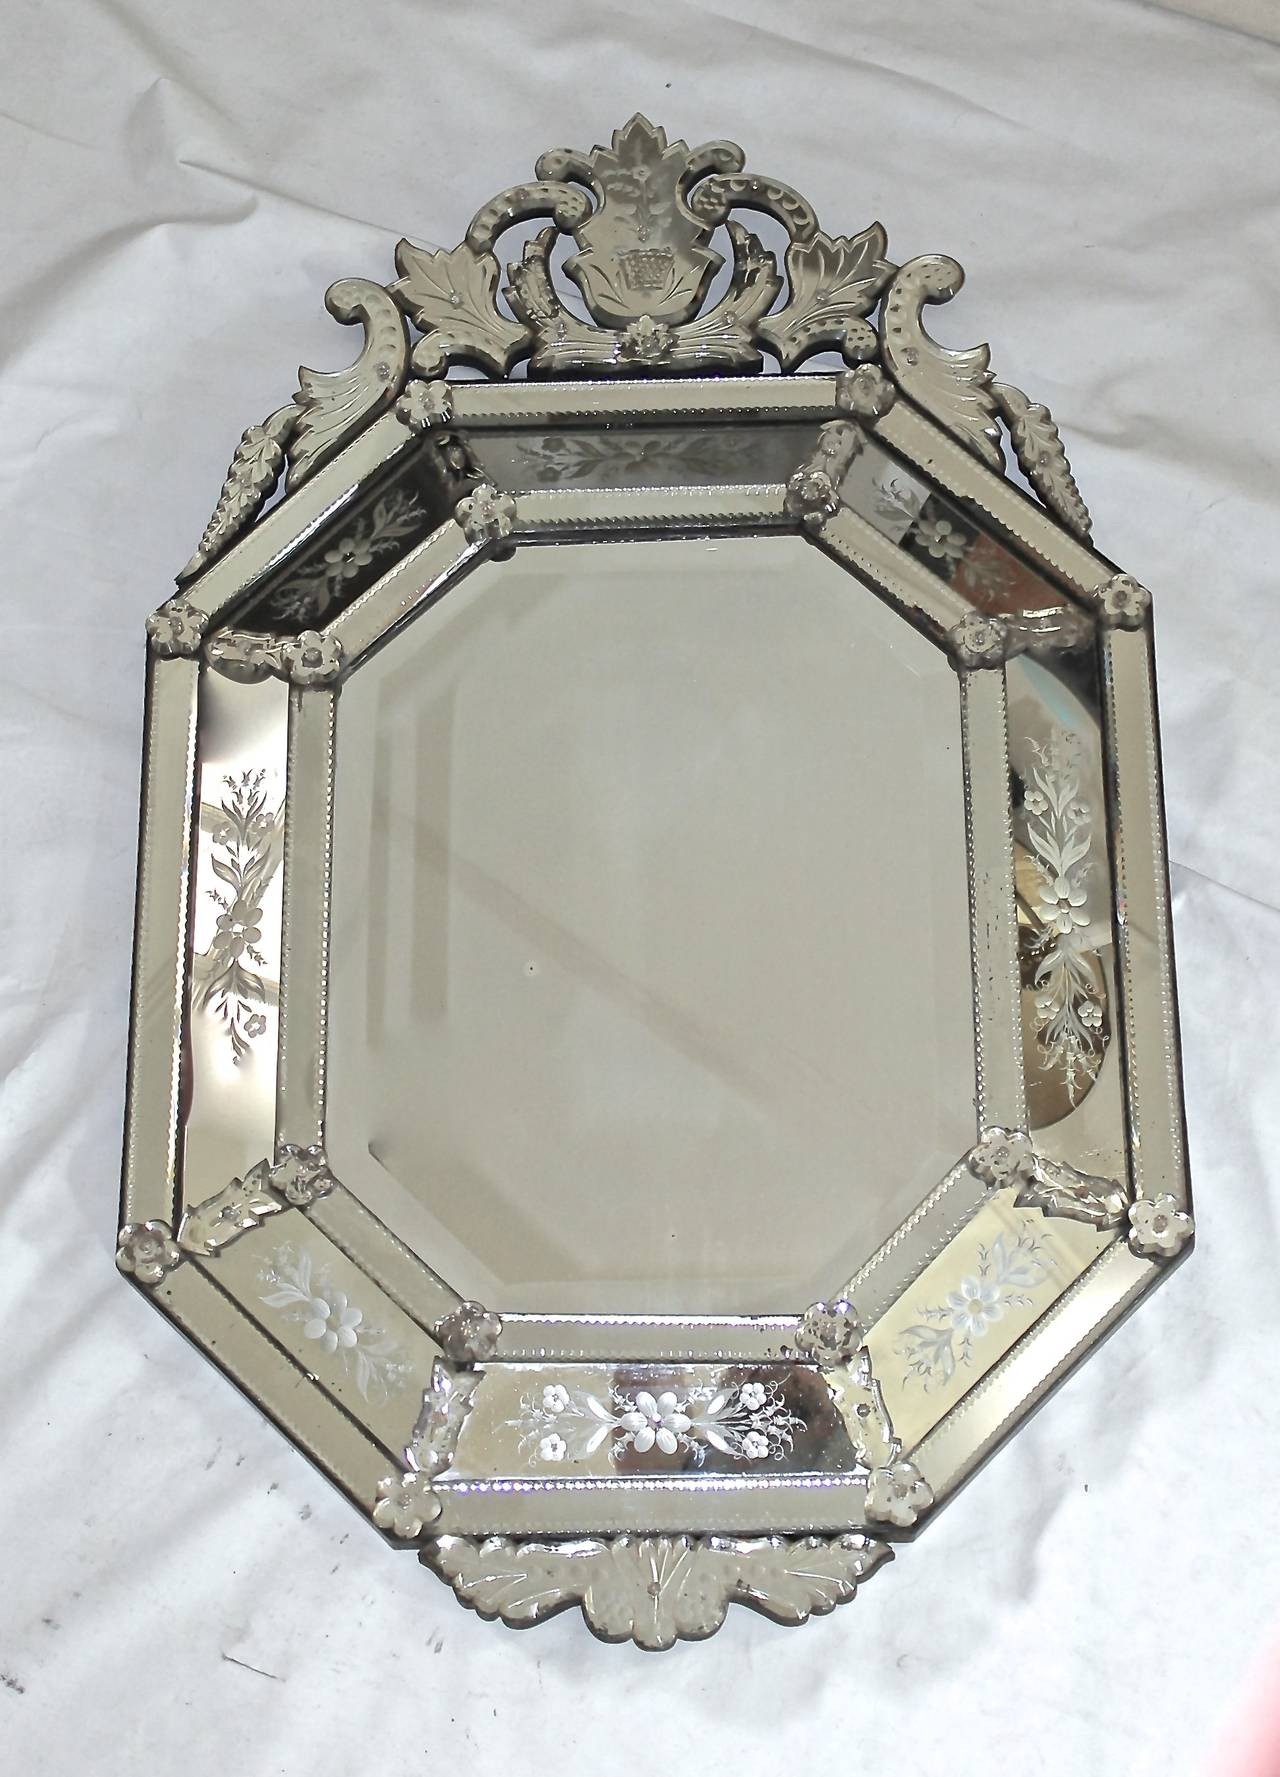 Exquisite octagonal Venetian Italian 1920s beveled mirror surrounded with intricately etched floral and leaf motif panels.  This item is located at our Dallas showroom.